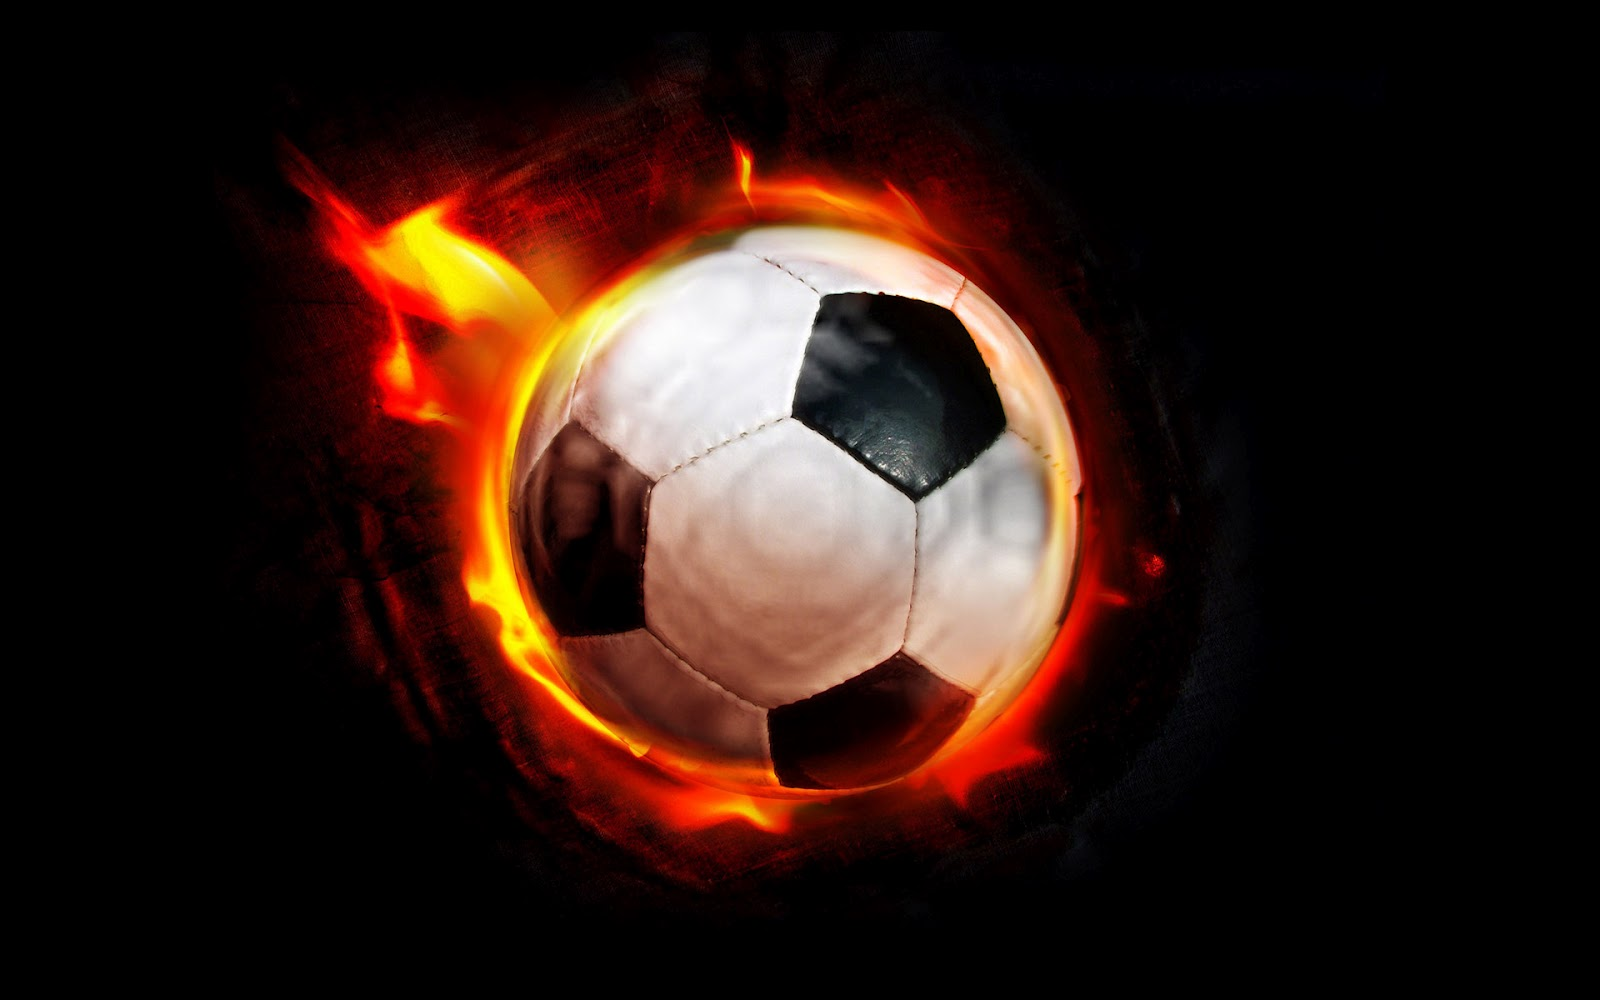 life with the soccer fire wallpaper! Light up your desktop background ...